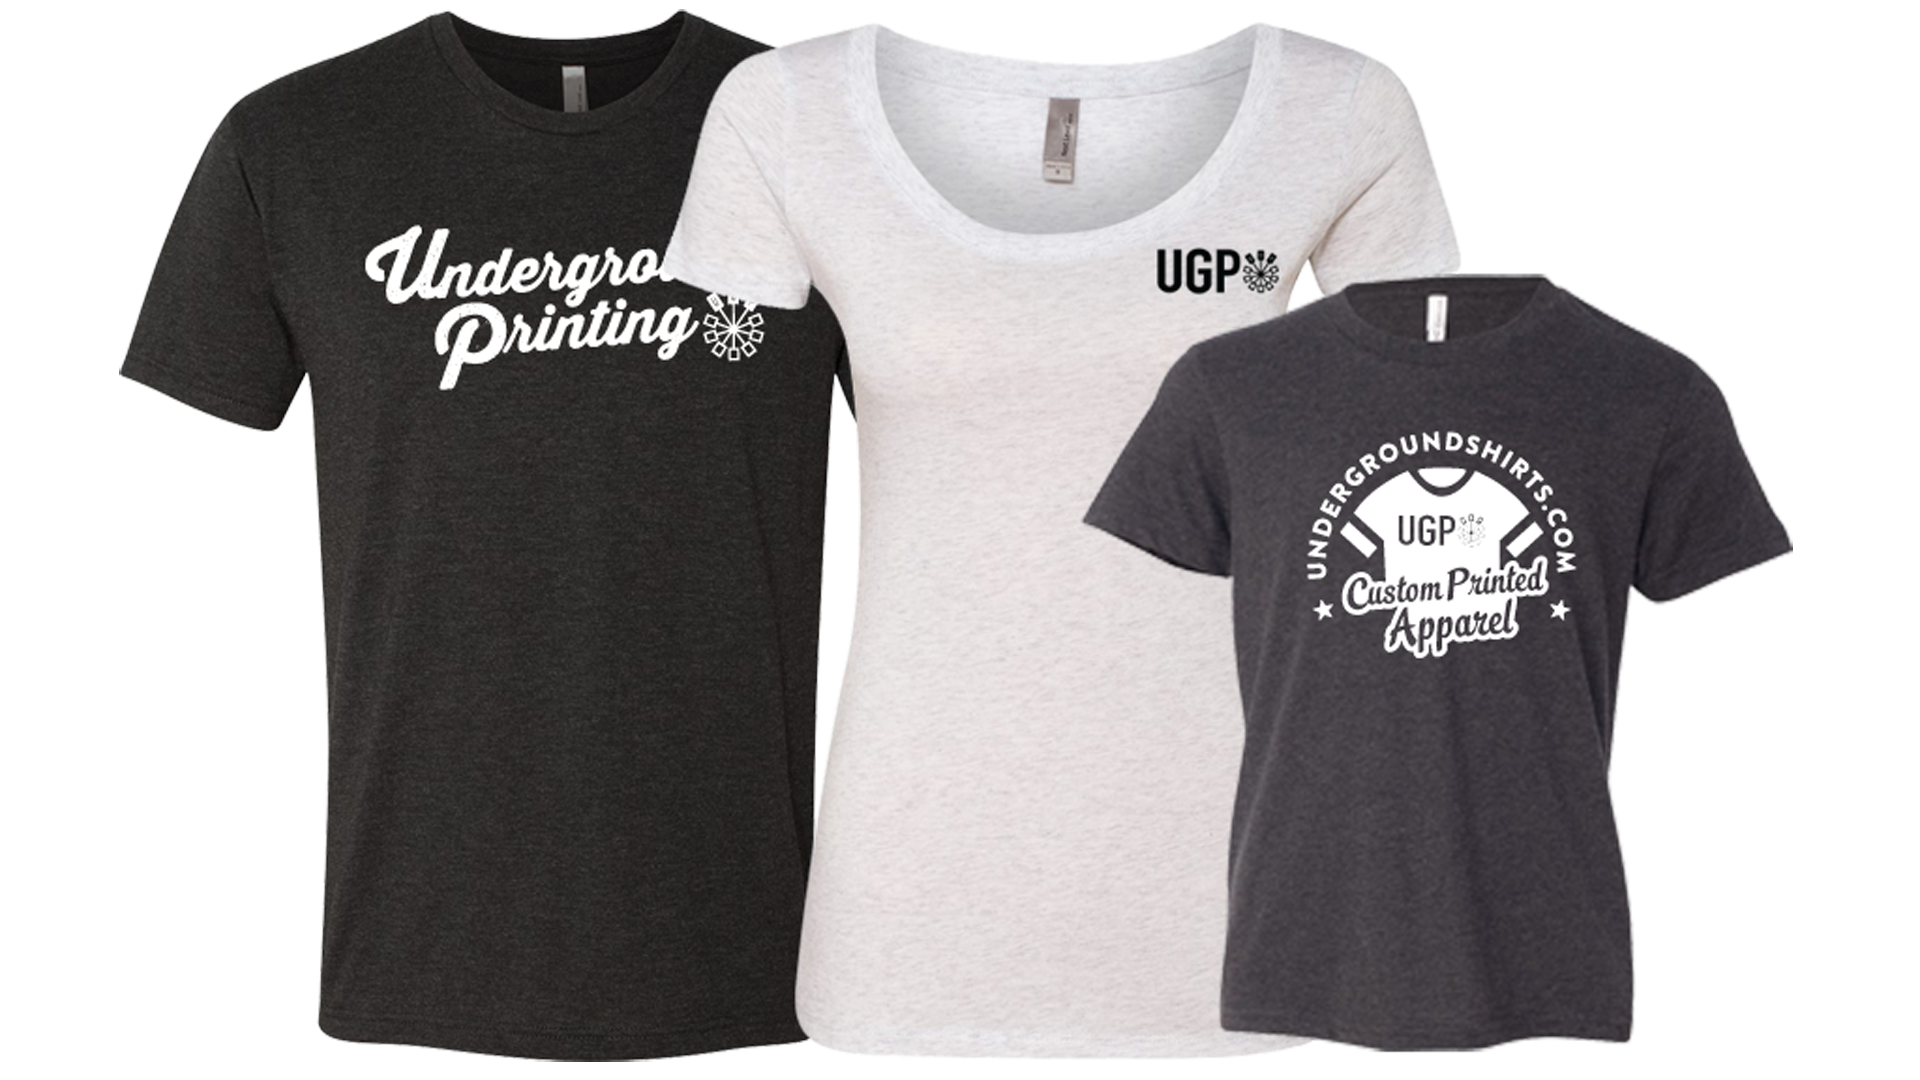 2b328d744 Custom T-Shirt Printing in Ann Arbor, MI | 1114 S. University Ave.